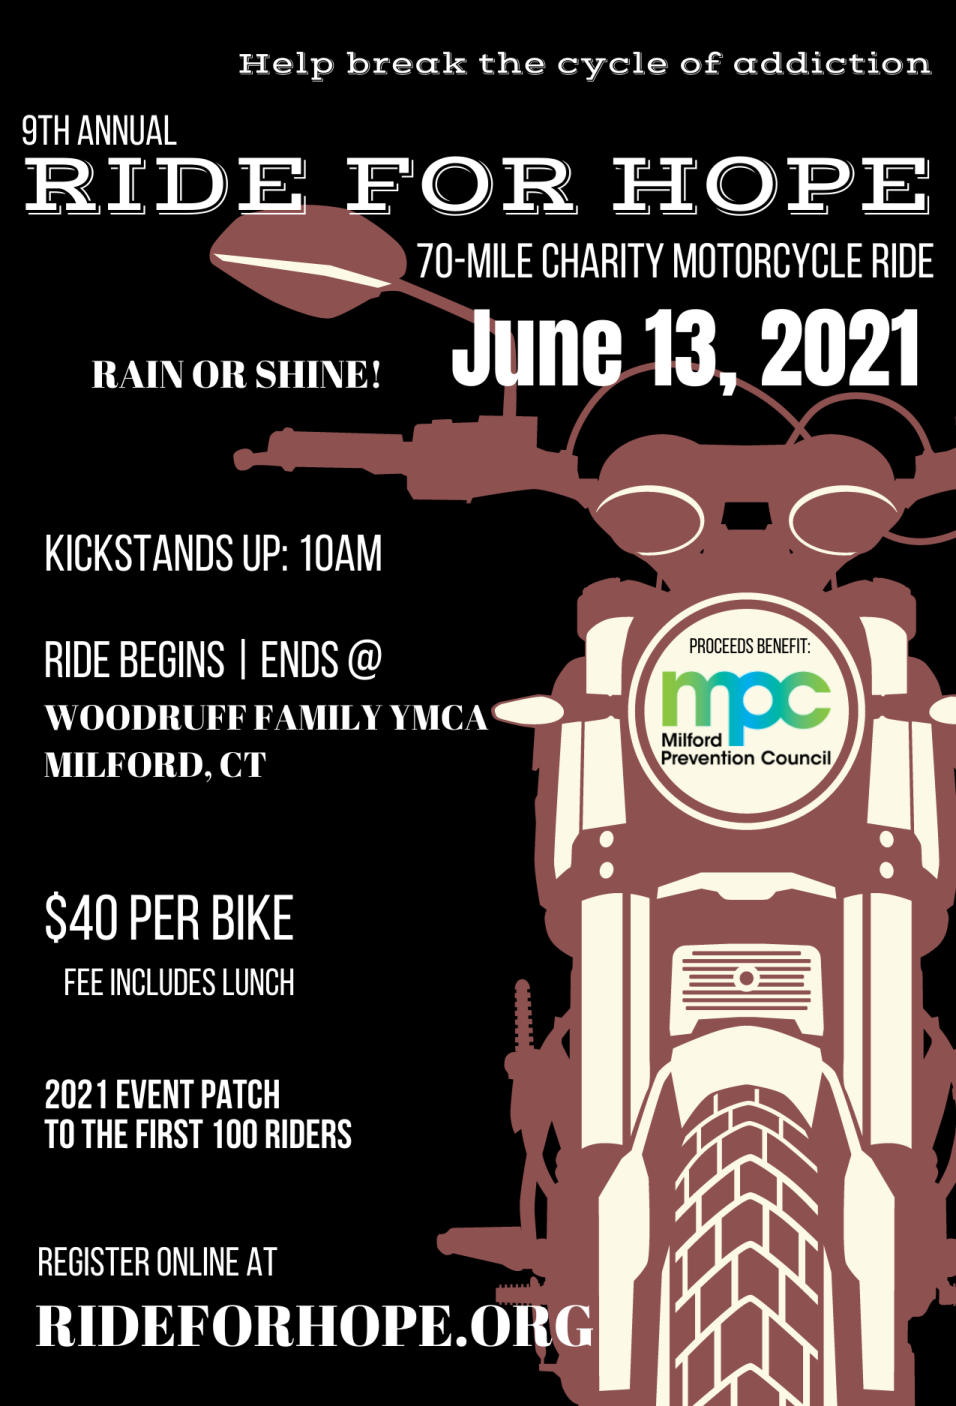 Milford Prevention Council 9TH ANNUAL RIDE FOR HOPE CHARITY MOTORCYCLE RIDE